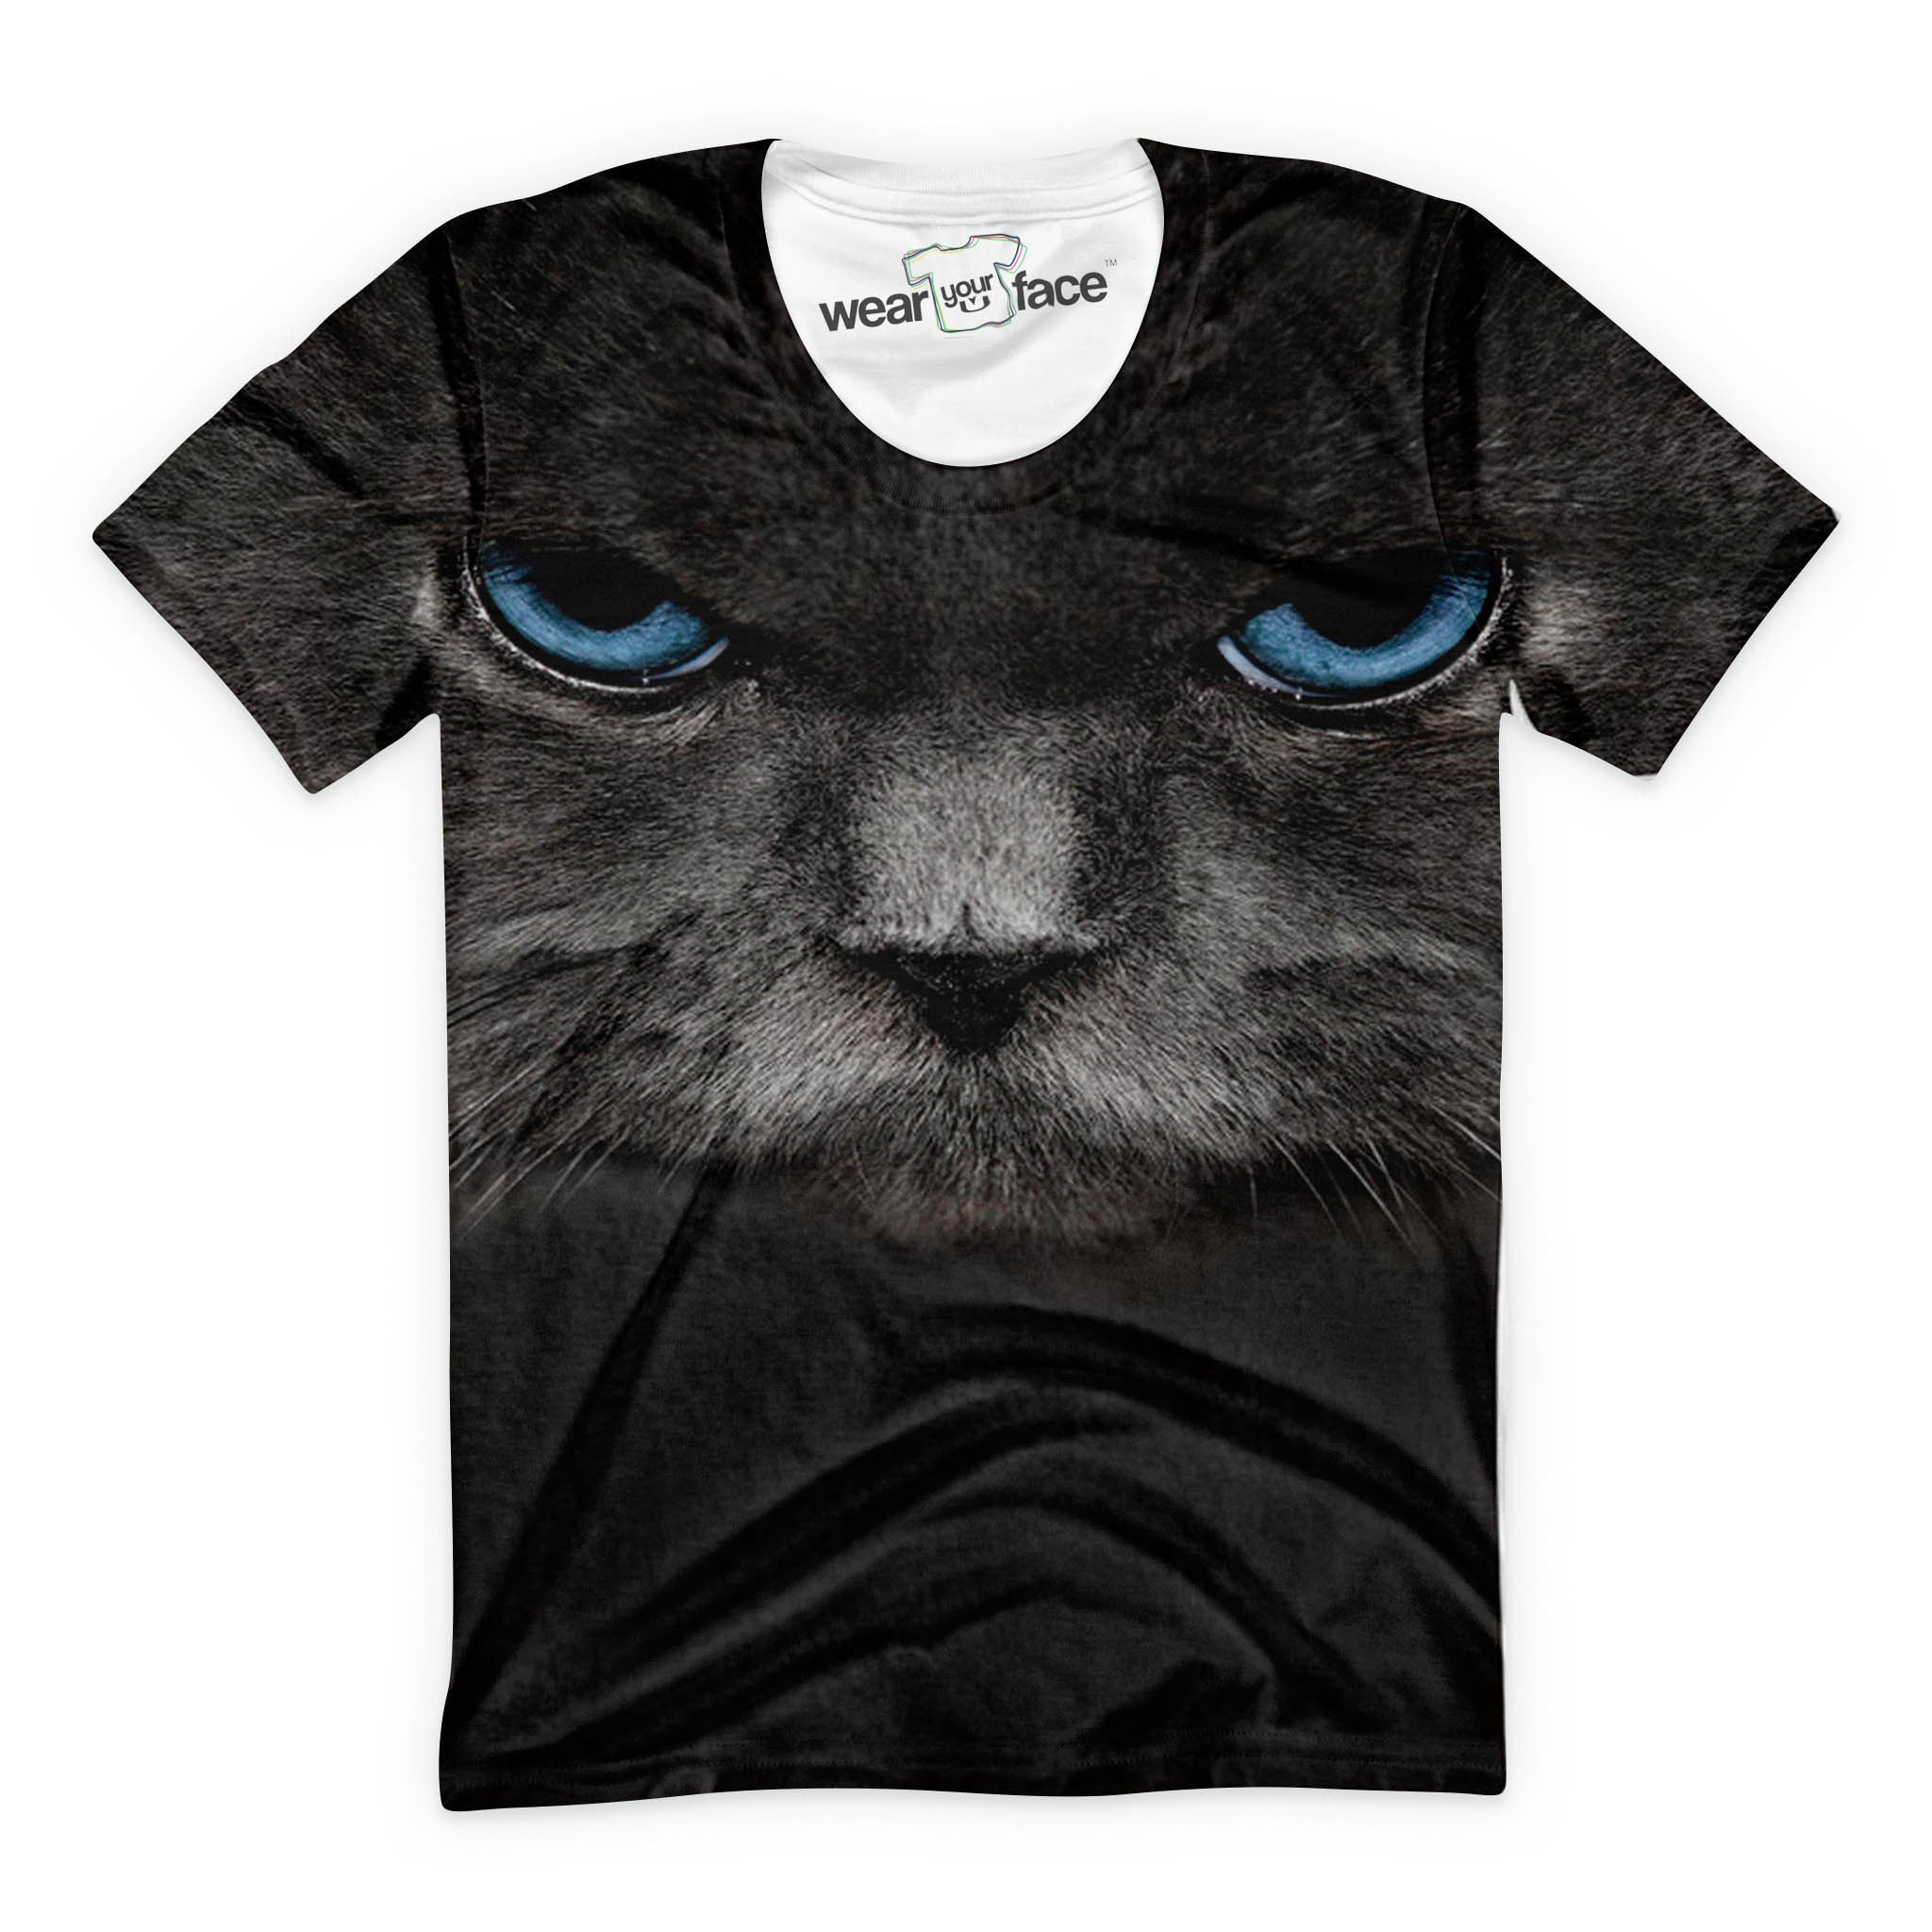 The Original Angry Cat T-Shirt